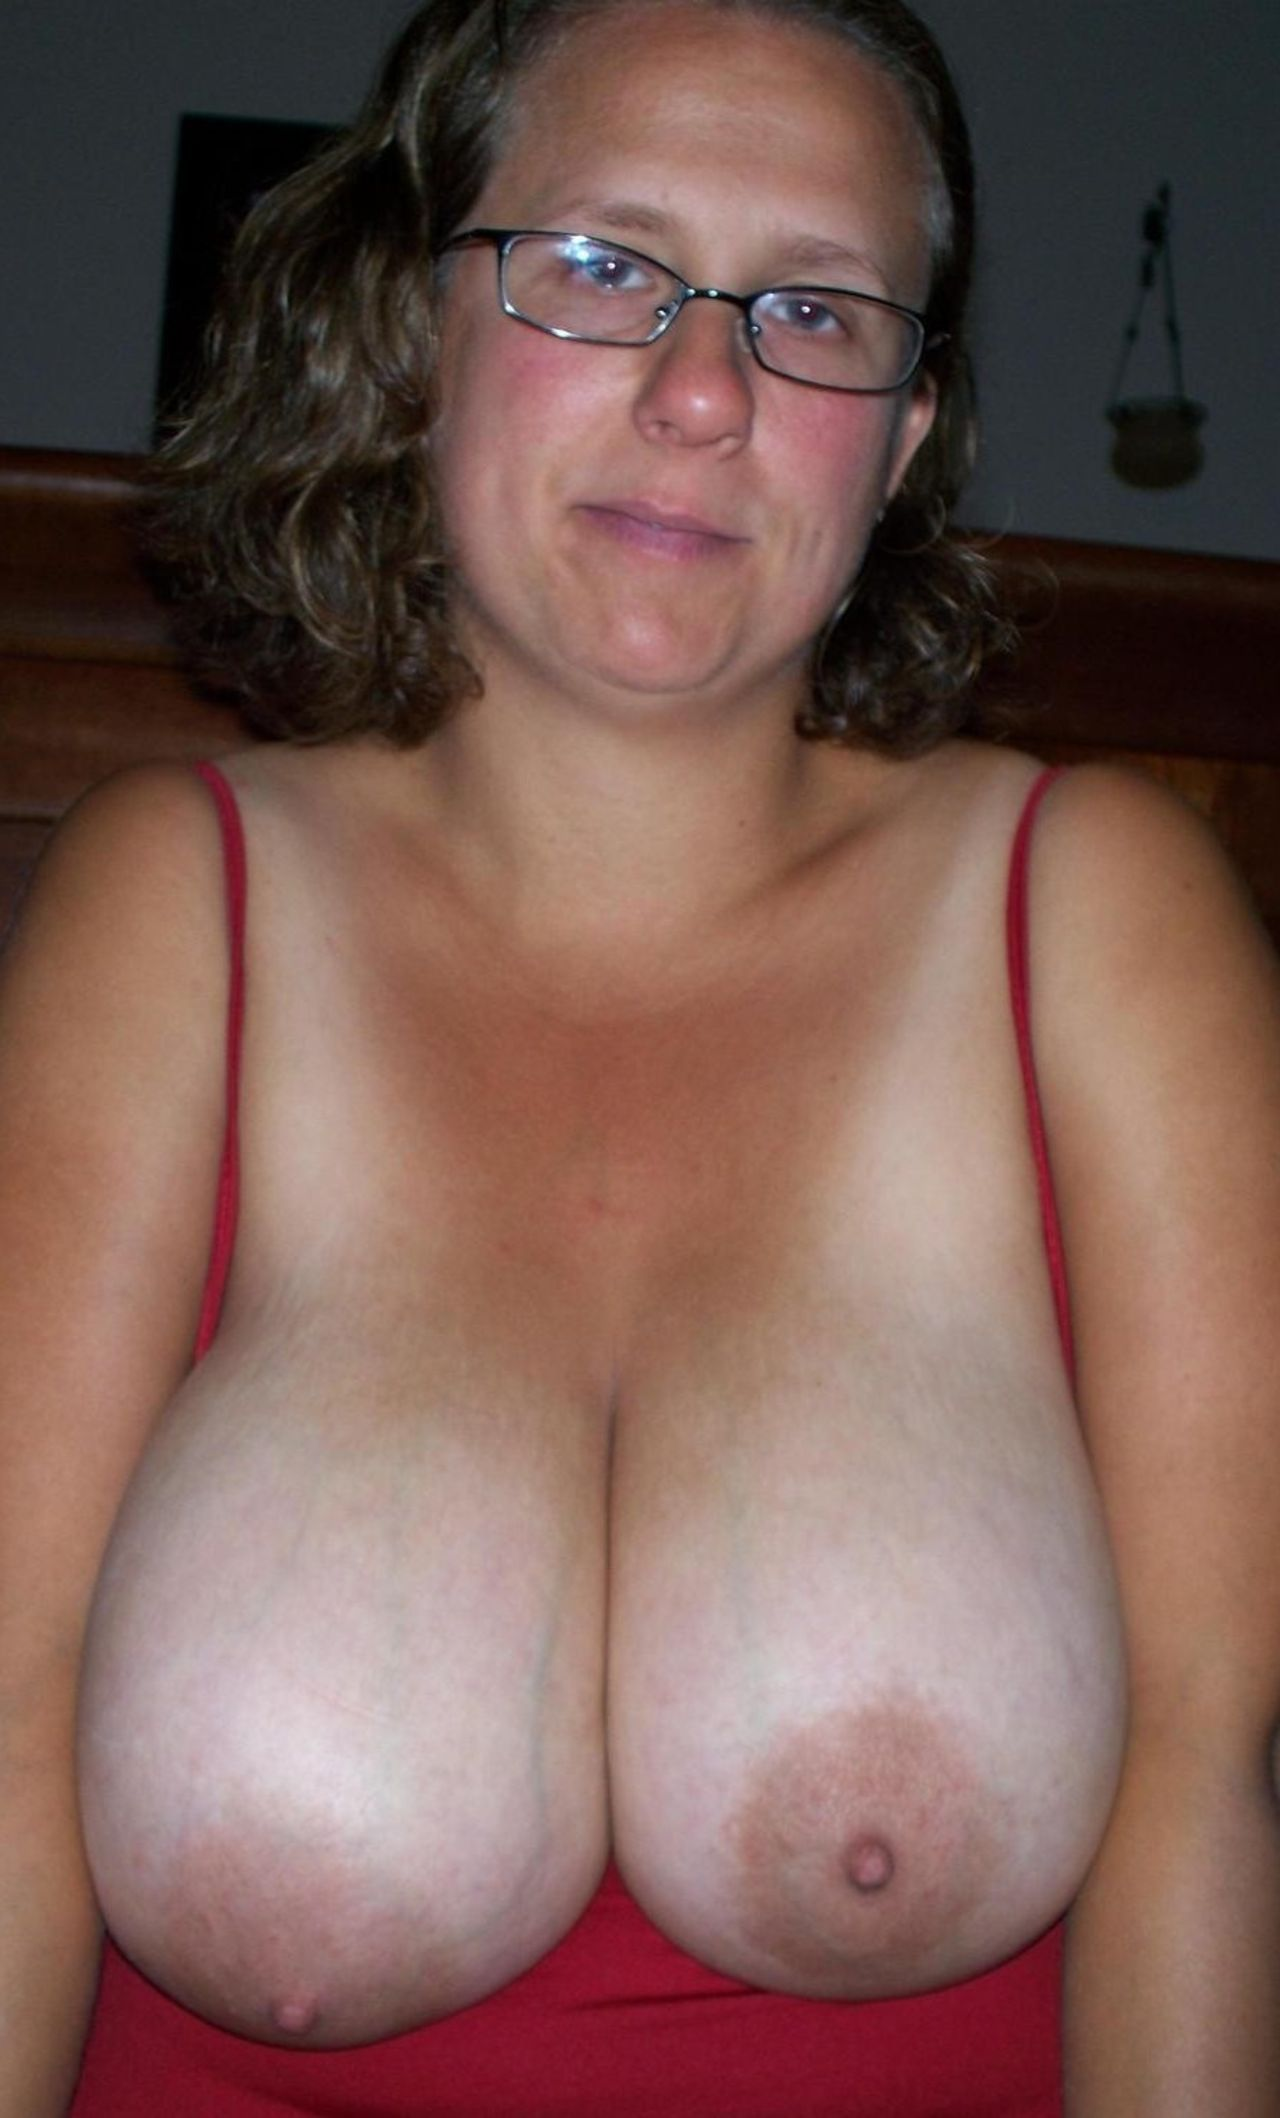 free adult picture sharing